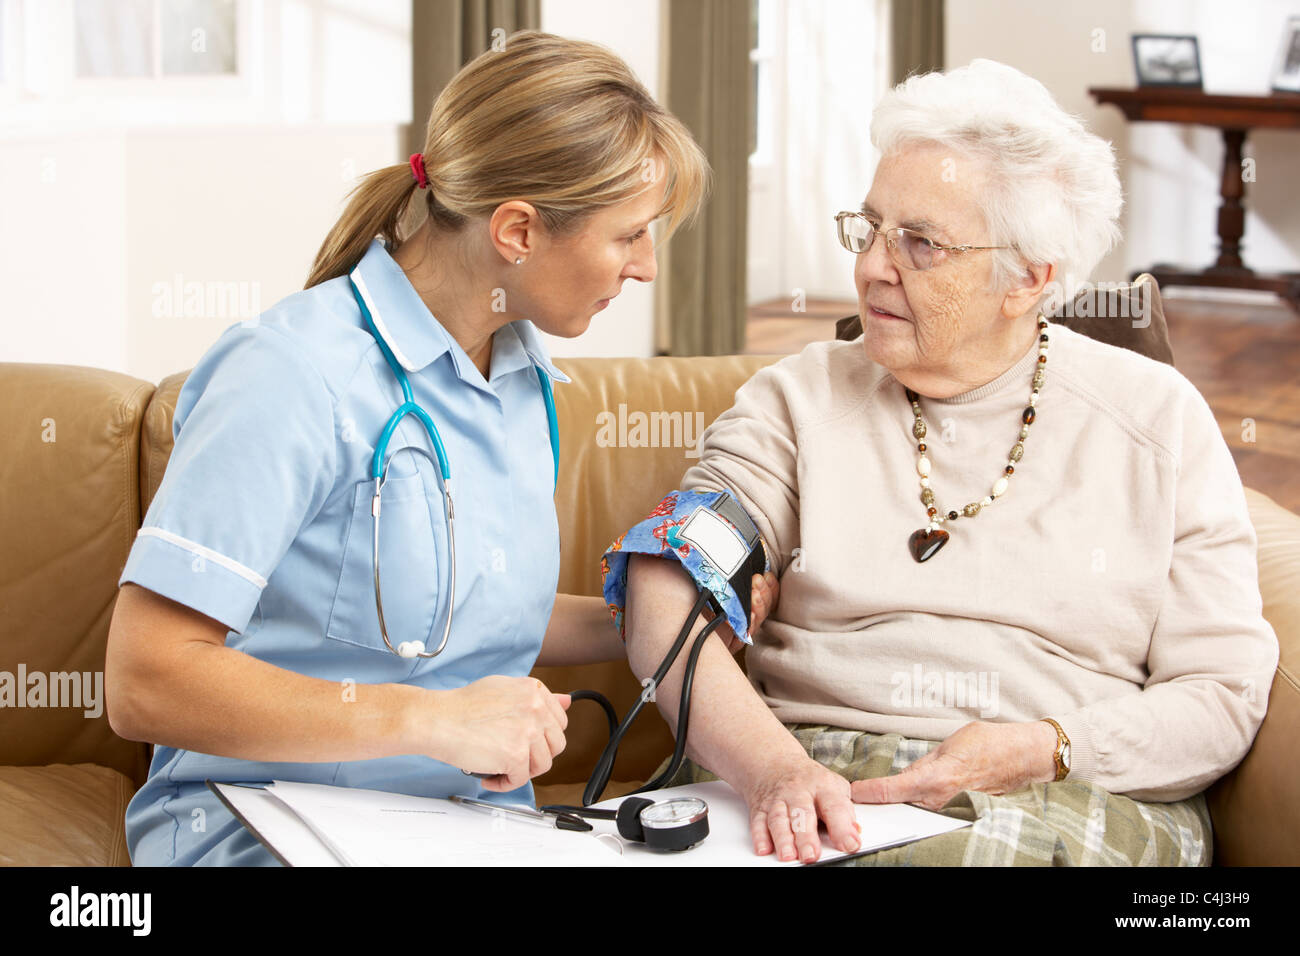 Senior Woman having Blood Pressure Taken By Health Visitor At Home - Stock Image